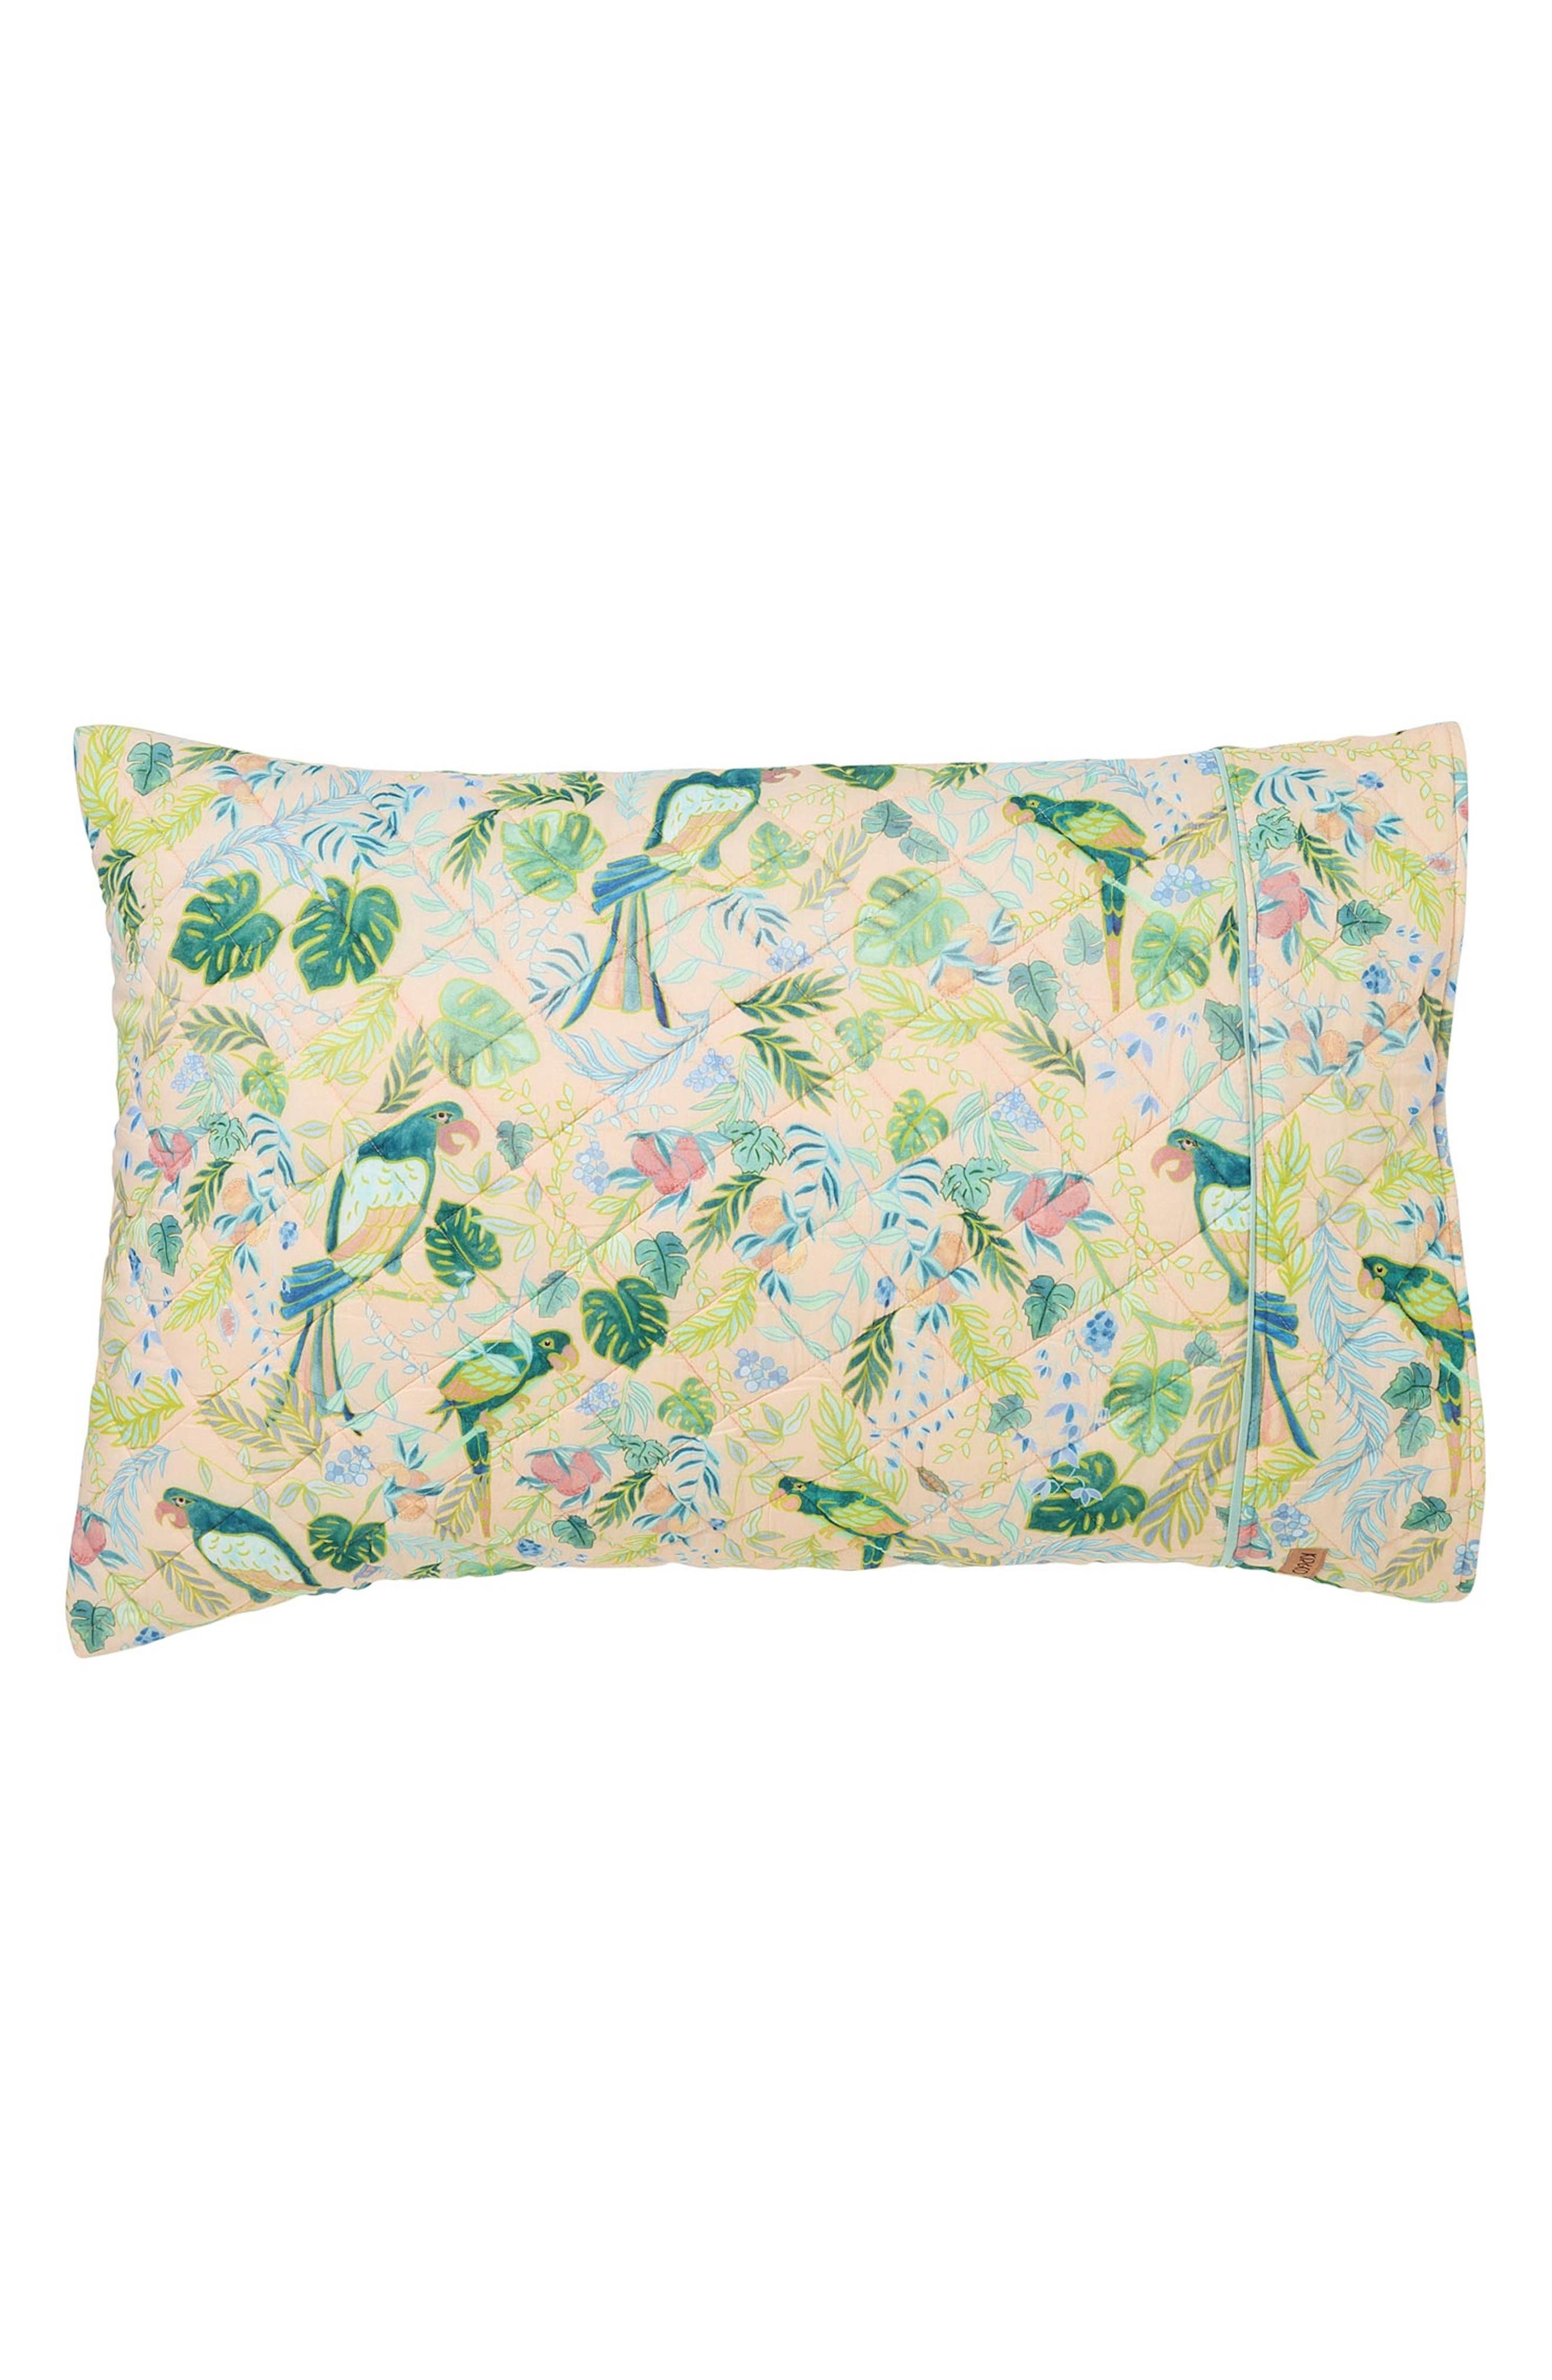 Birds of Paradise Quilted Cotton Pillowcase,                             Main thumbnail 1, color,                             Multi